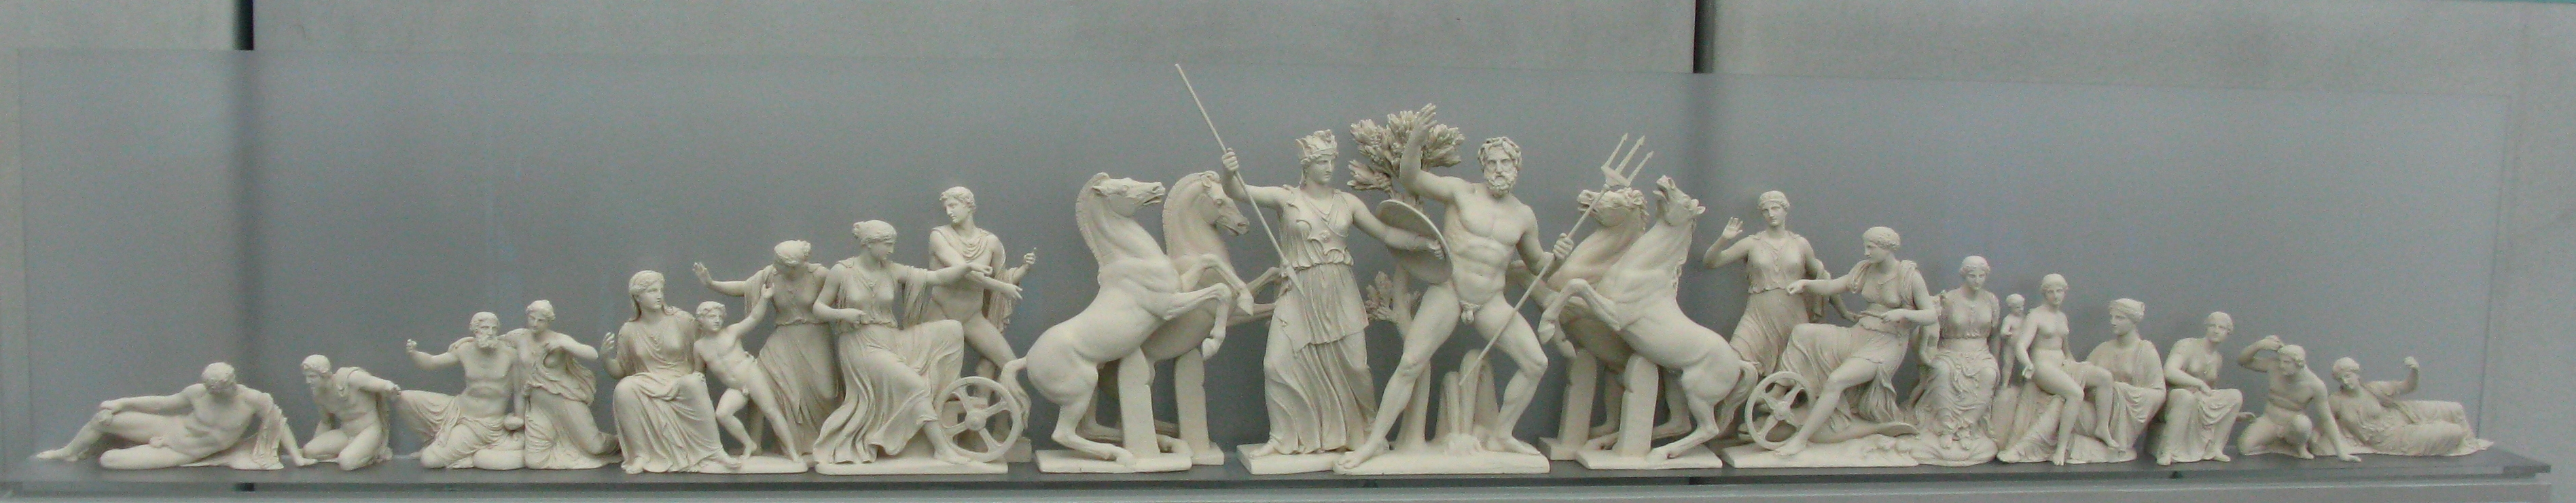 Reconstruction of the West pediment of the Parthenon, in scale.